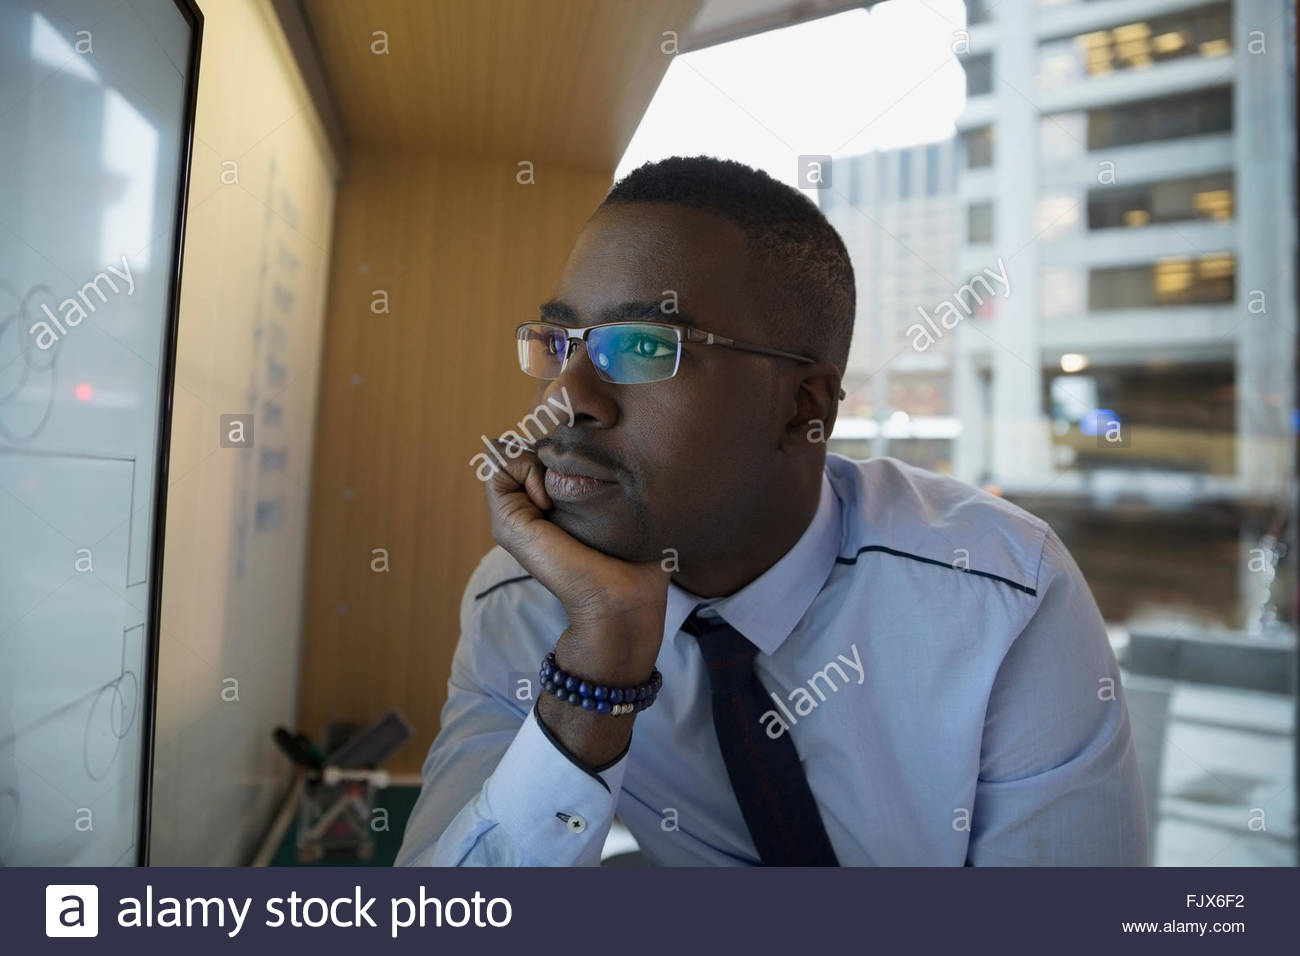 Pensive architect viewing digital blueprint on computer monitor - Stock Image